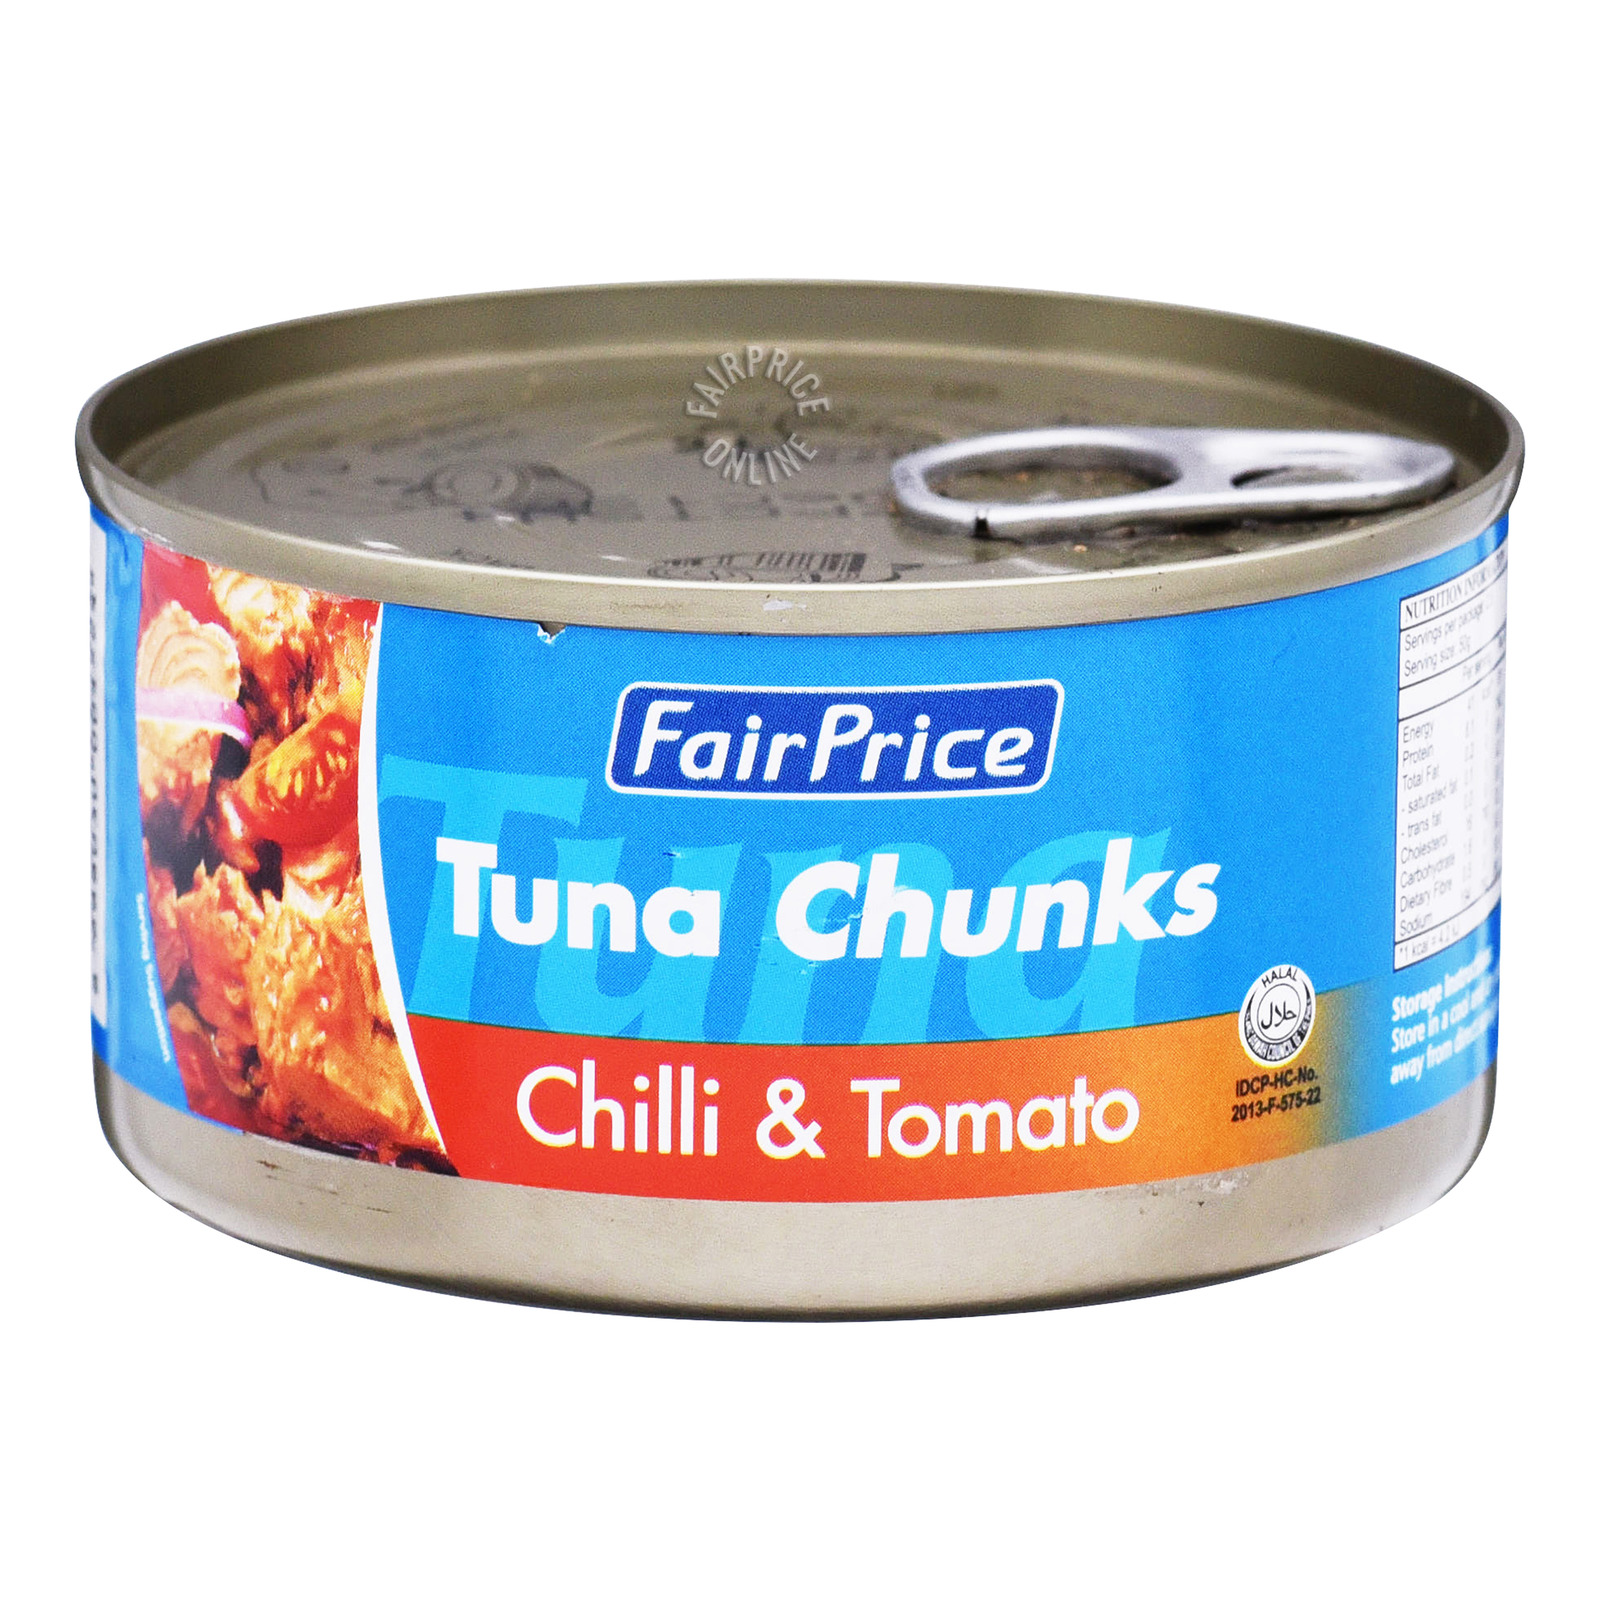 FairPrice Tuna Chunks - Chili and Tomato